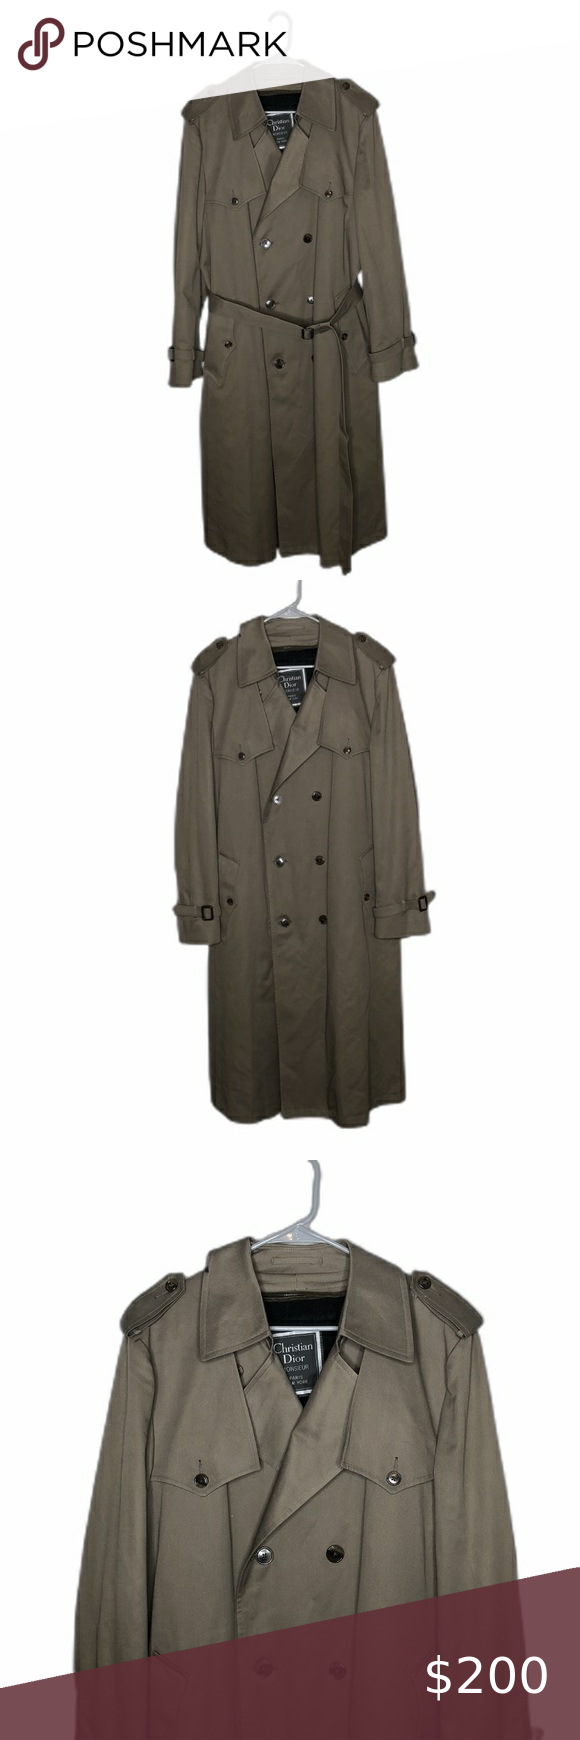 Burberry The Chelsea Slim Fit Heritage Trench Coat Nordstrom Burberry Raincoat Burberry Trench Coat Trench Coat